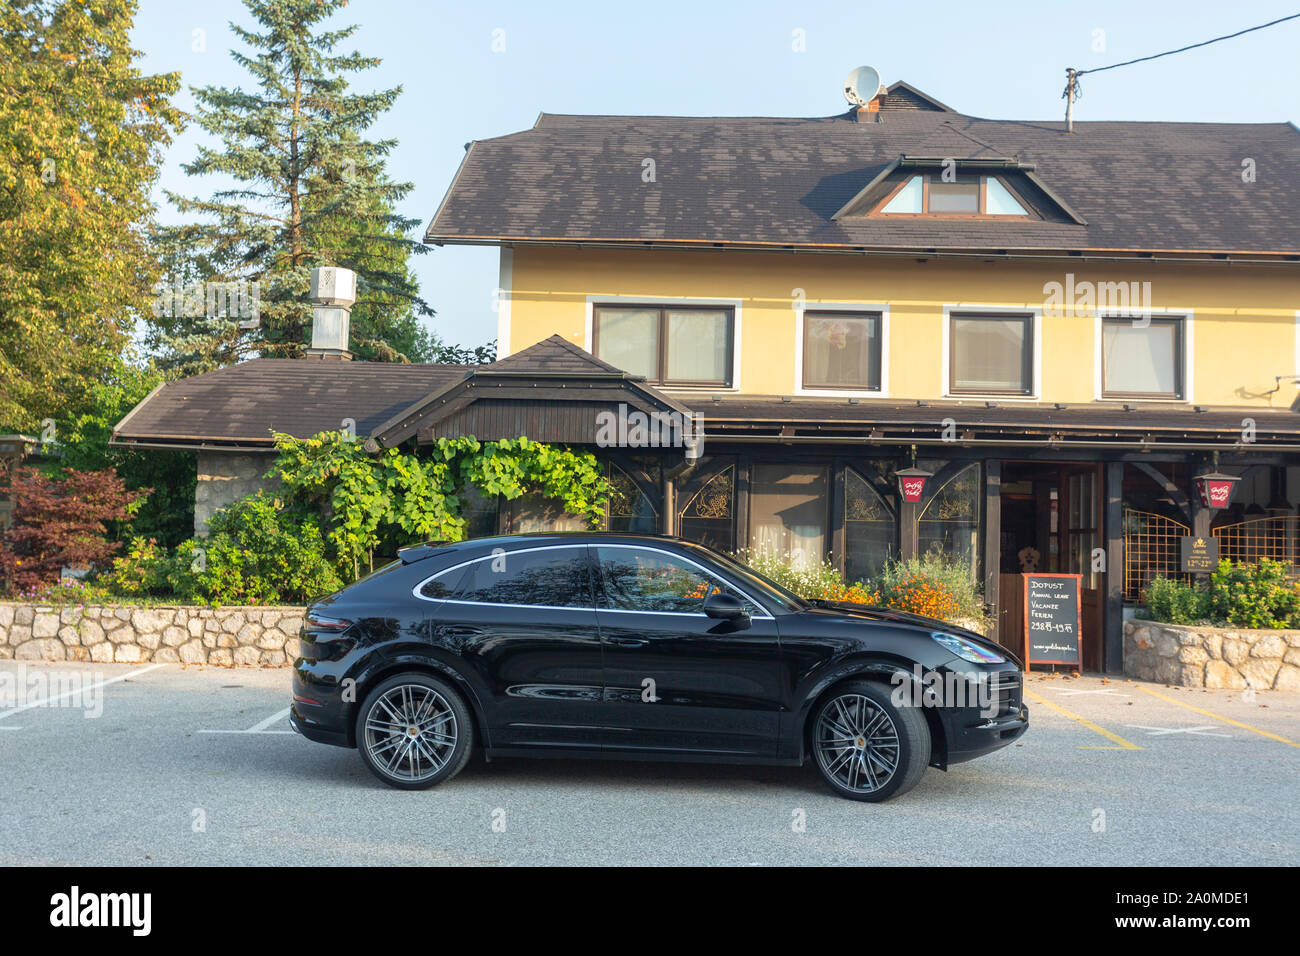 Slovenia Ljubljana 31 August 2019 Black Sport Suv Porsche Cayenne Coupe Turbo S From Stuttgart During Test Drive Stock Photo Alamy